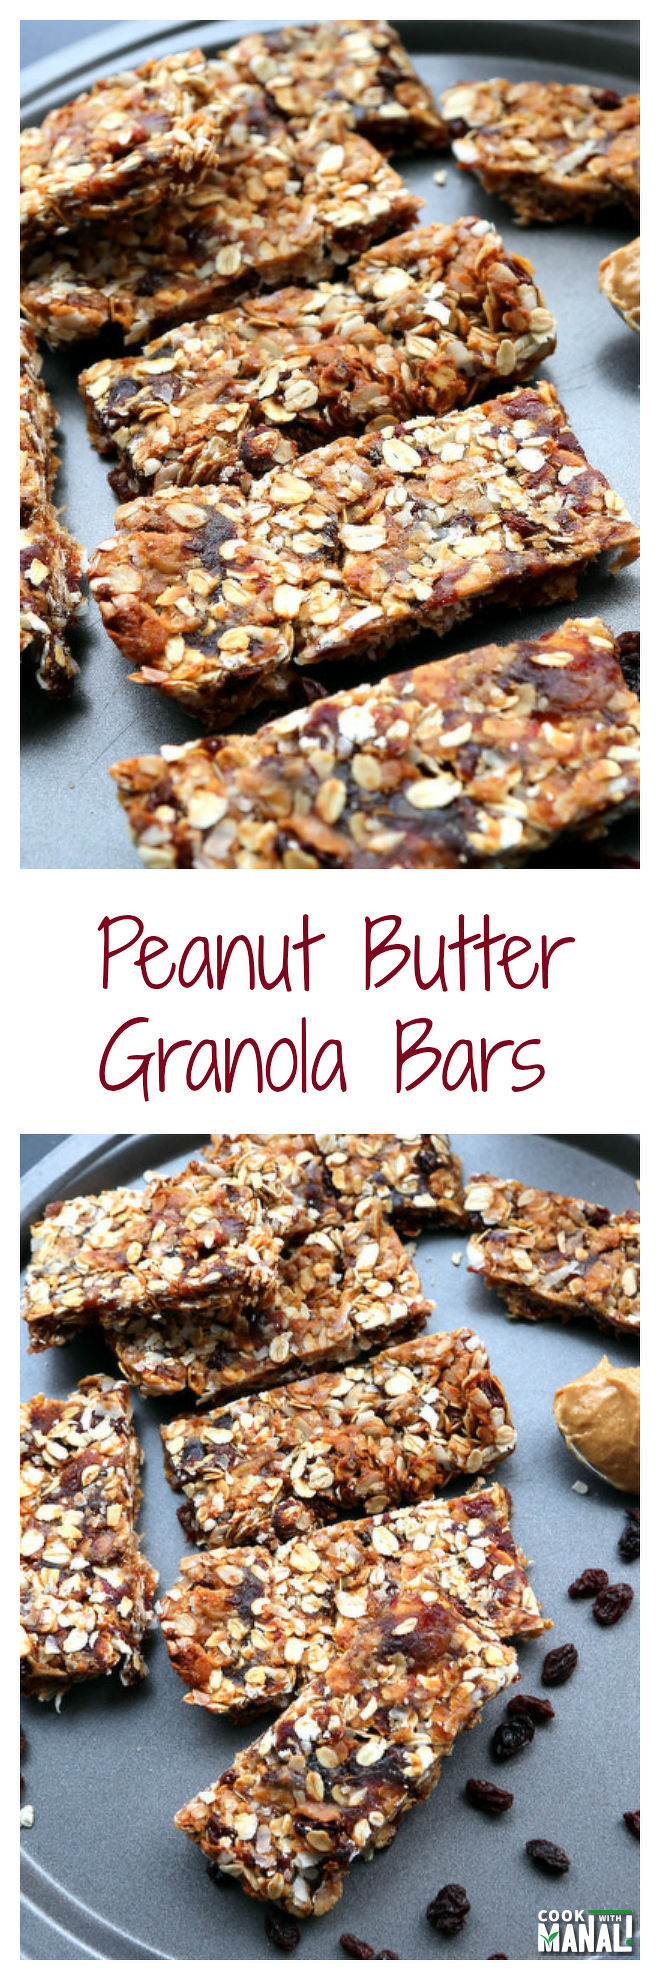 Peanut-Butter-Granola-Bars-Collage